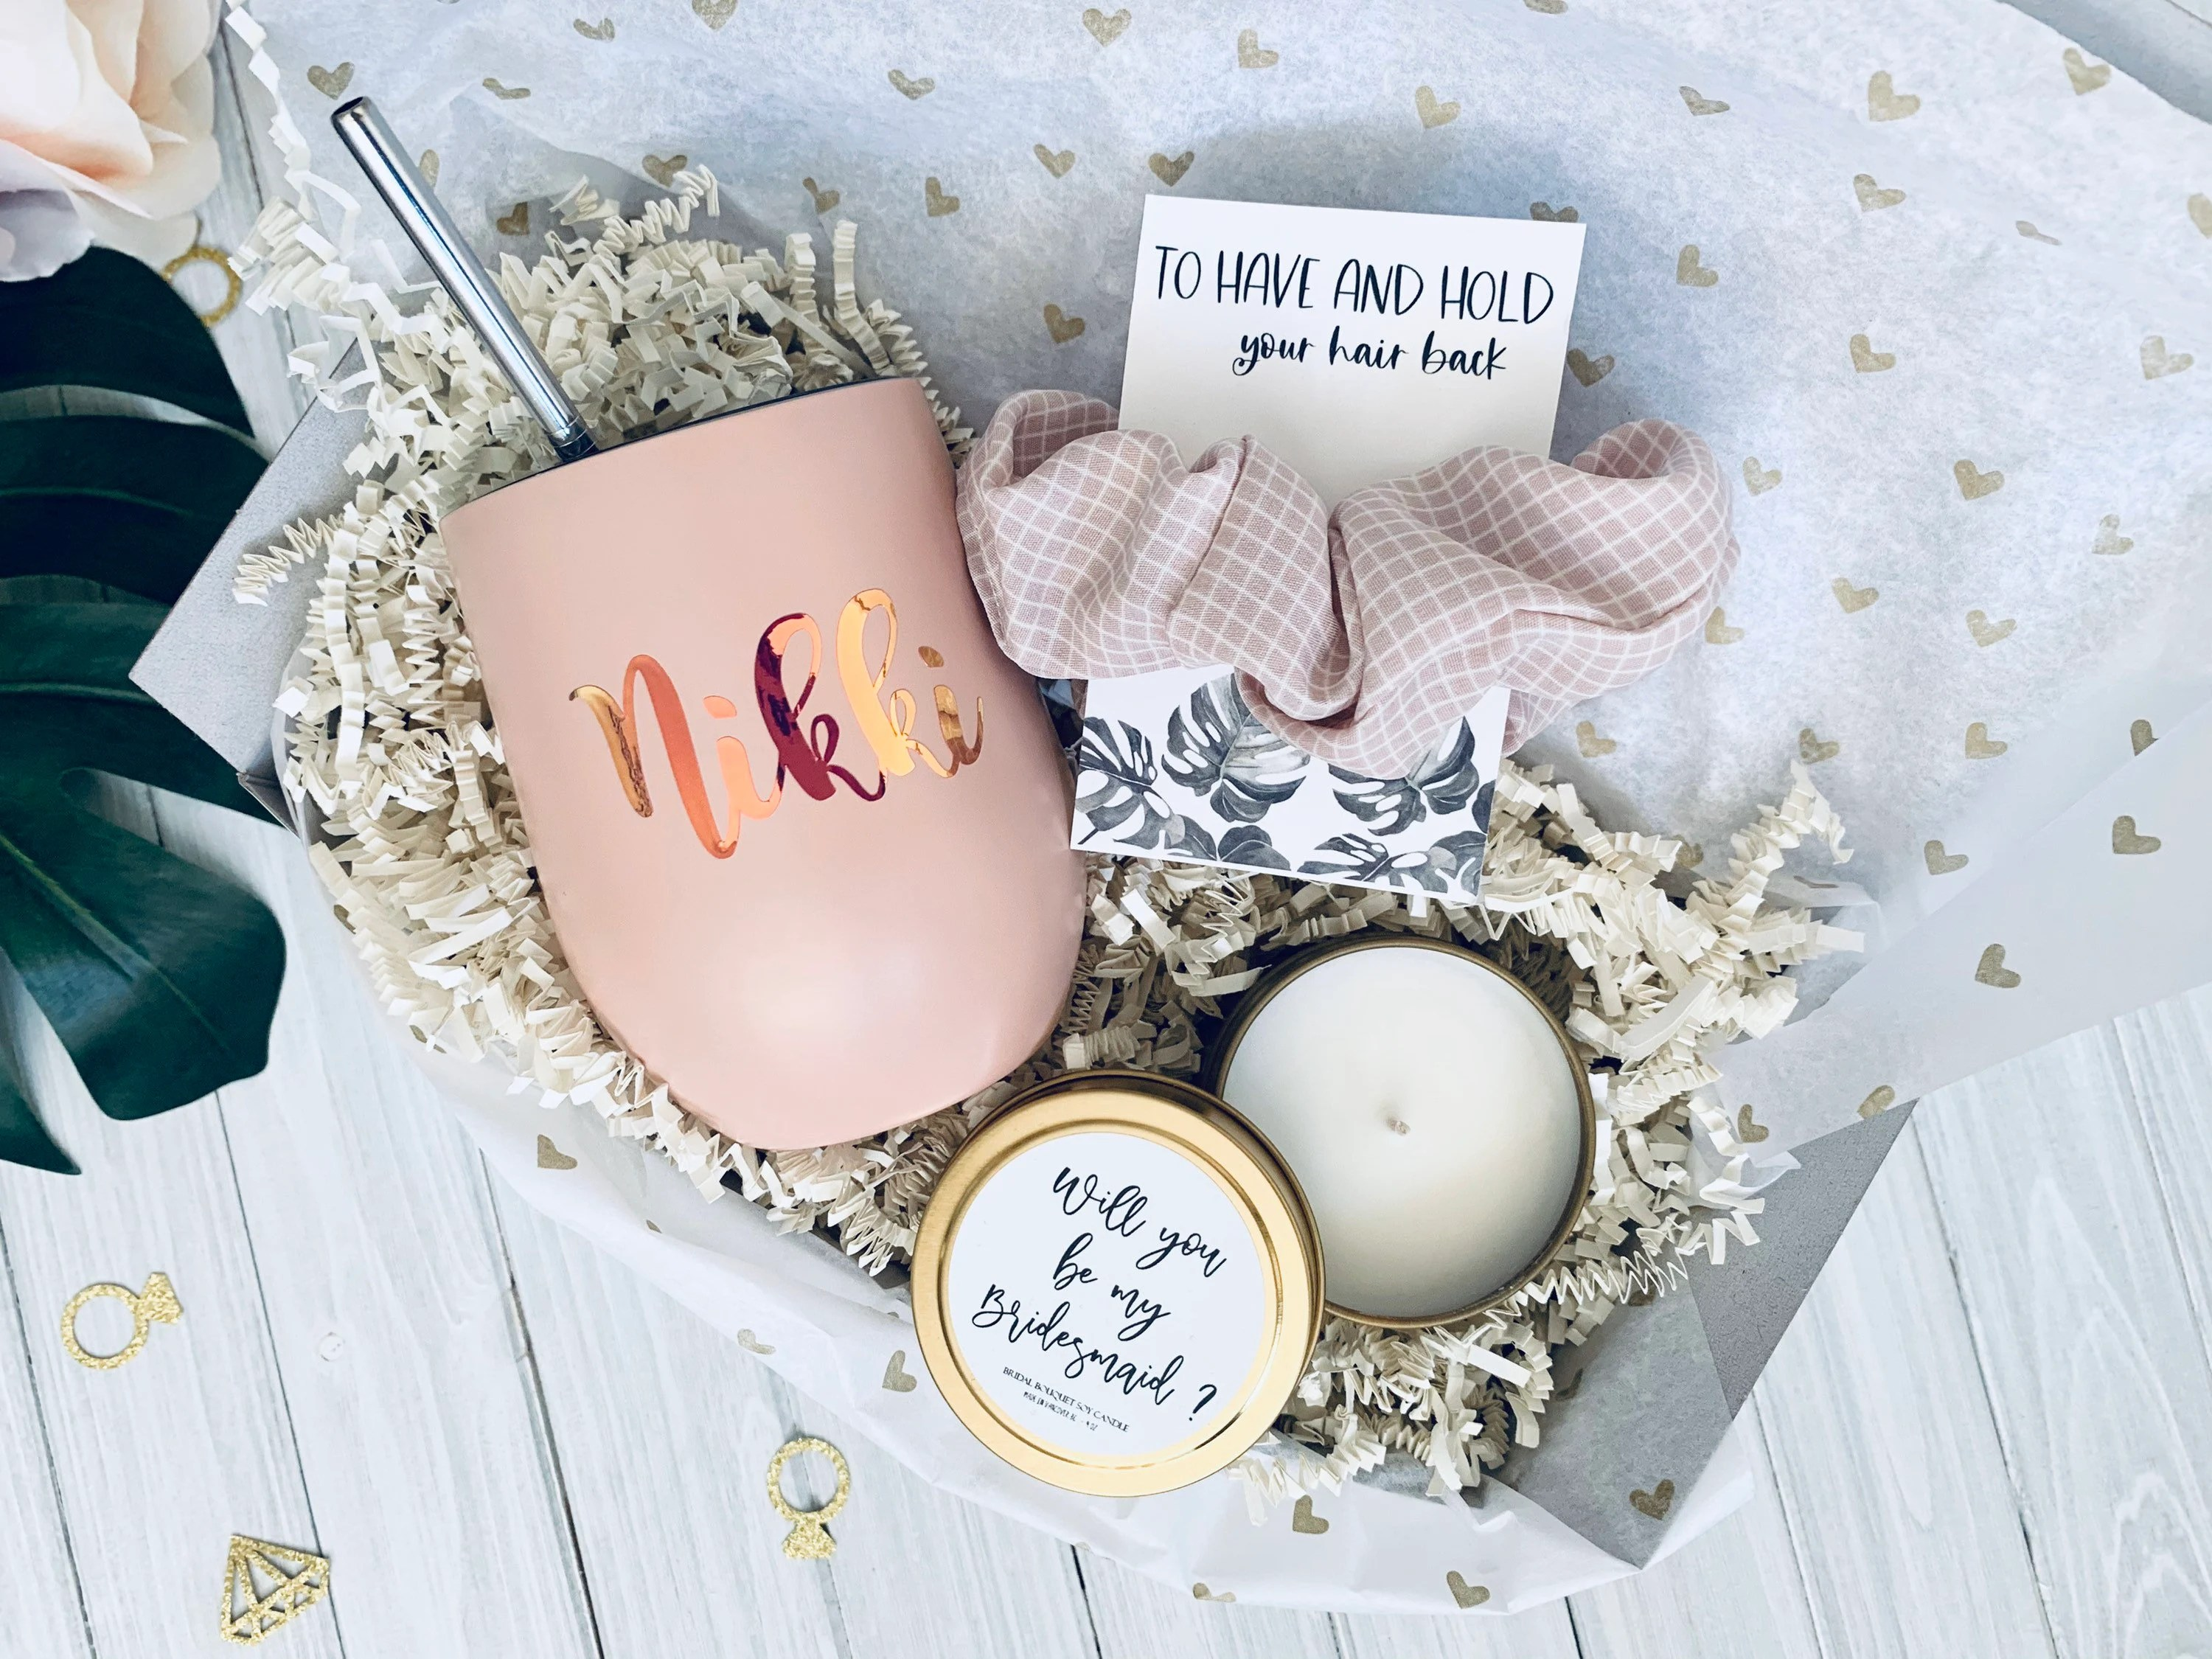 Bridesmaid proposal gift, Personalized bridesmaid gift, Bridesmaid gift, Bridesmaid gift box, Bridesmaid proposal, Will you be my bridesmaid                                                                    MyHandmadeWeddingCO         From shop MyHandmadeWeddingCO                               5 out of 5 stars                                                                                                                                                                                                                                                          (253)                 253 reviews                                                      CA$68.50